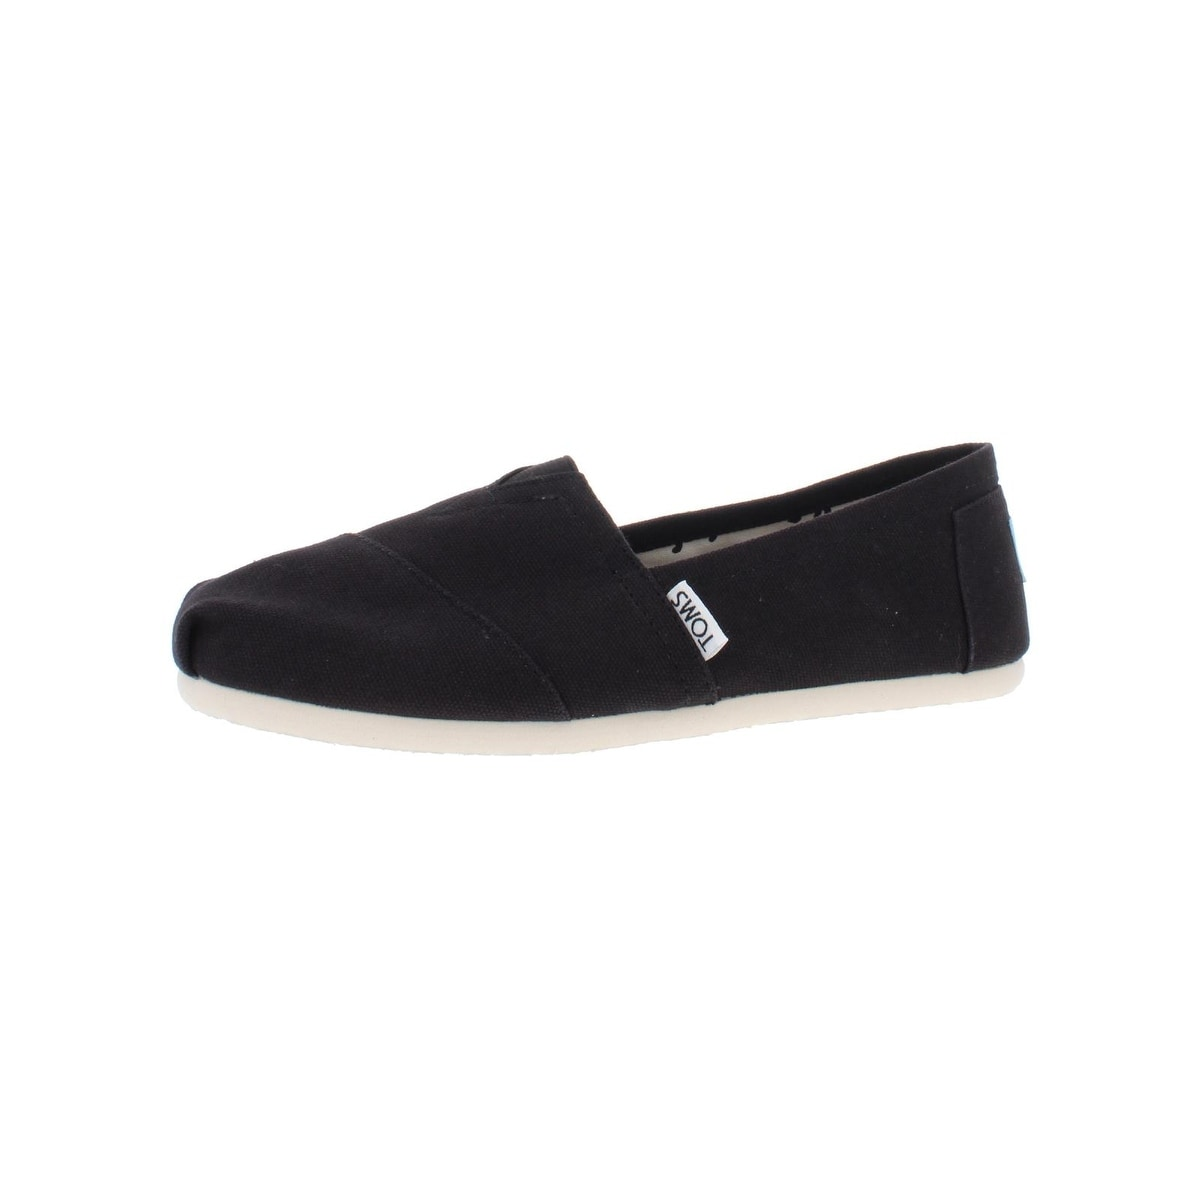 Peace fist logo Classic Women Canvas Slip-Ons Loafer Shoes Sneaker